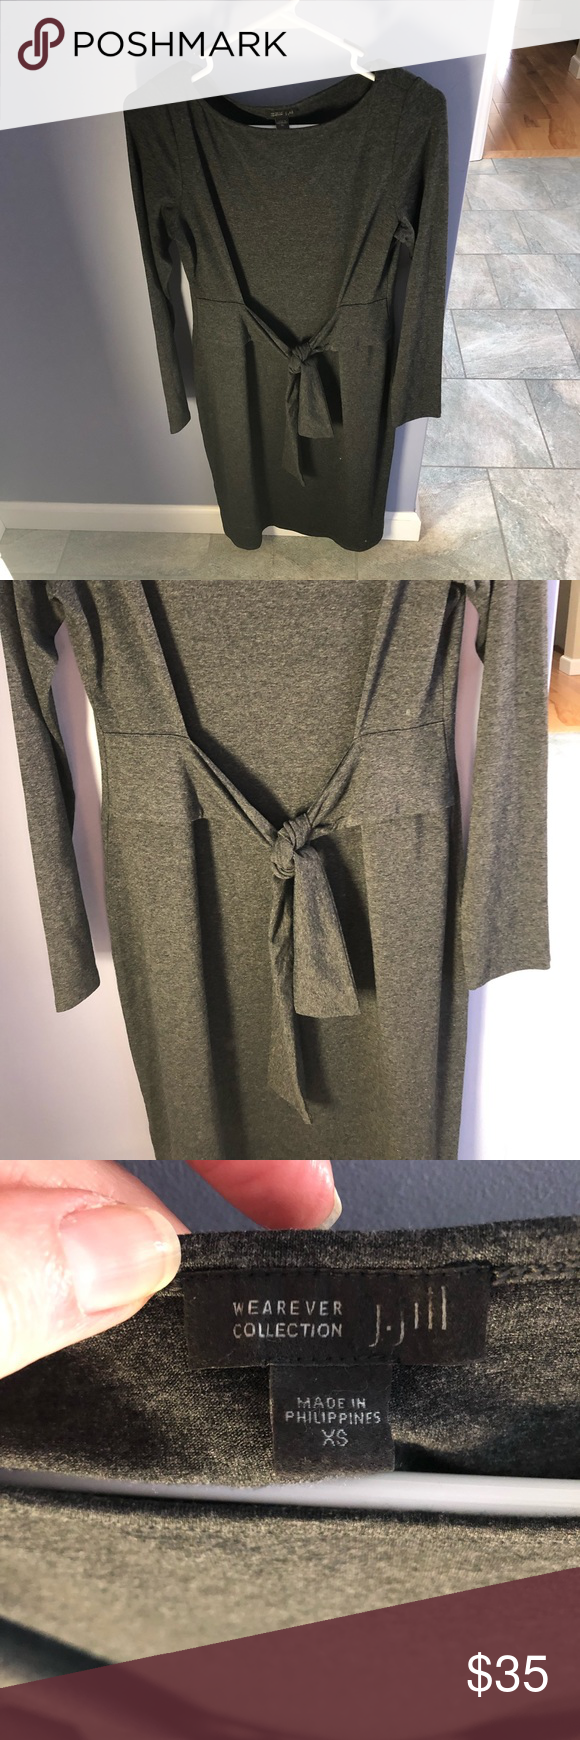 c29c0366330 J Jill Wearever Collection tie front jersey dress BNWT- J Jill Wearever  Collection tie front